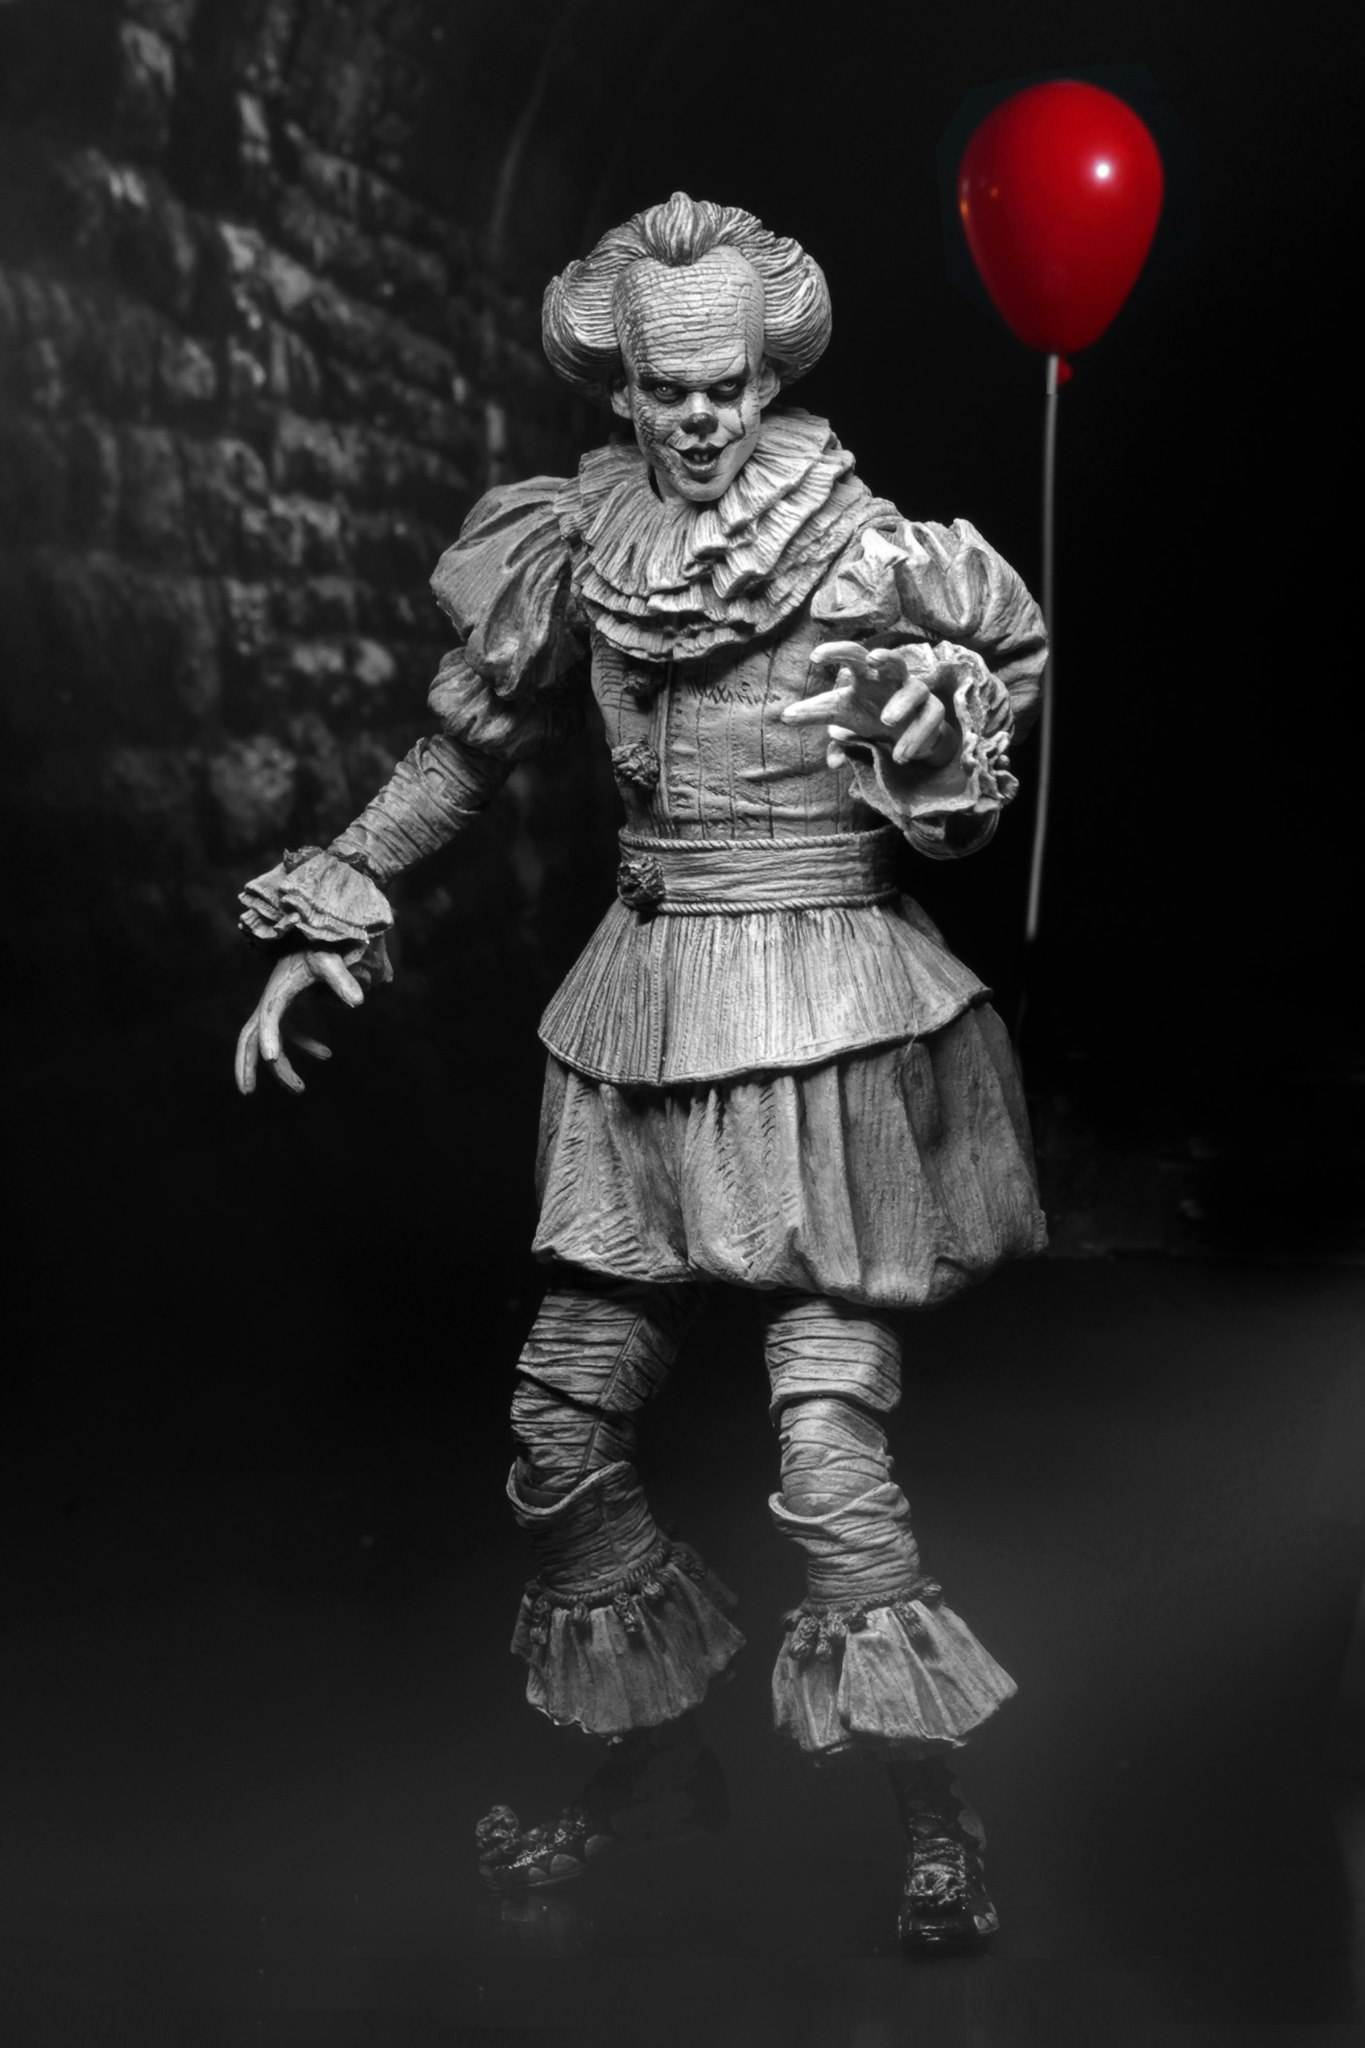 Neca Pennywise Sdcc 2019 10